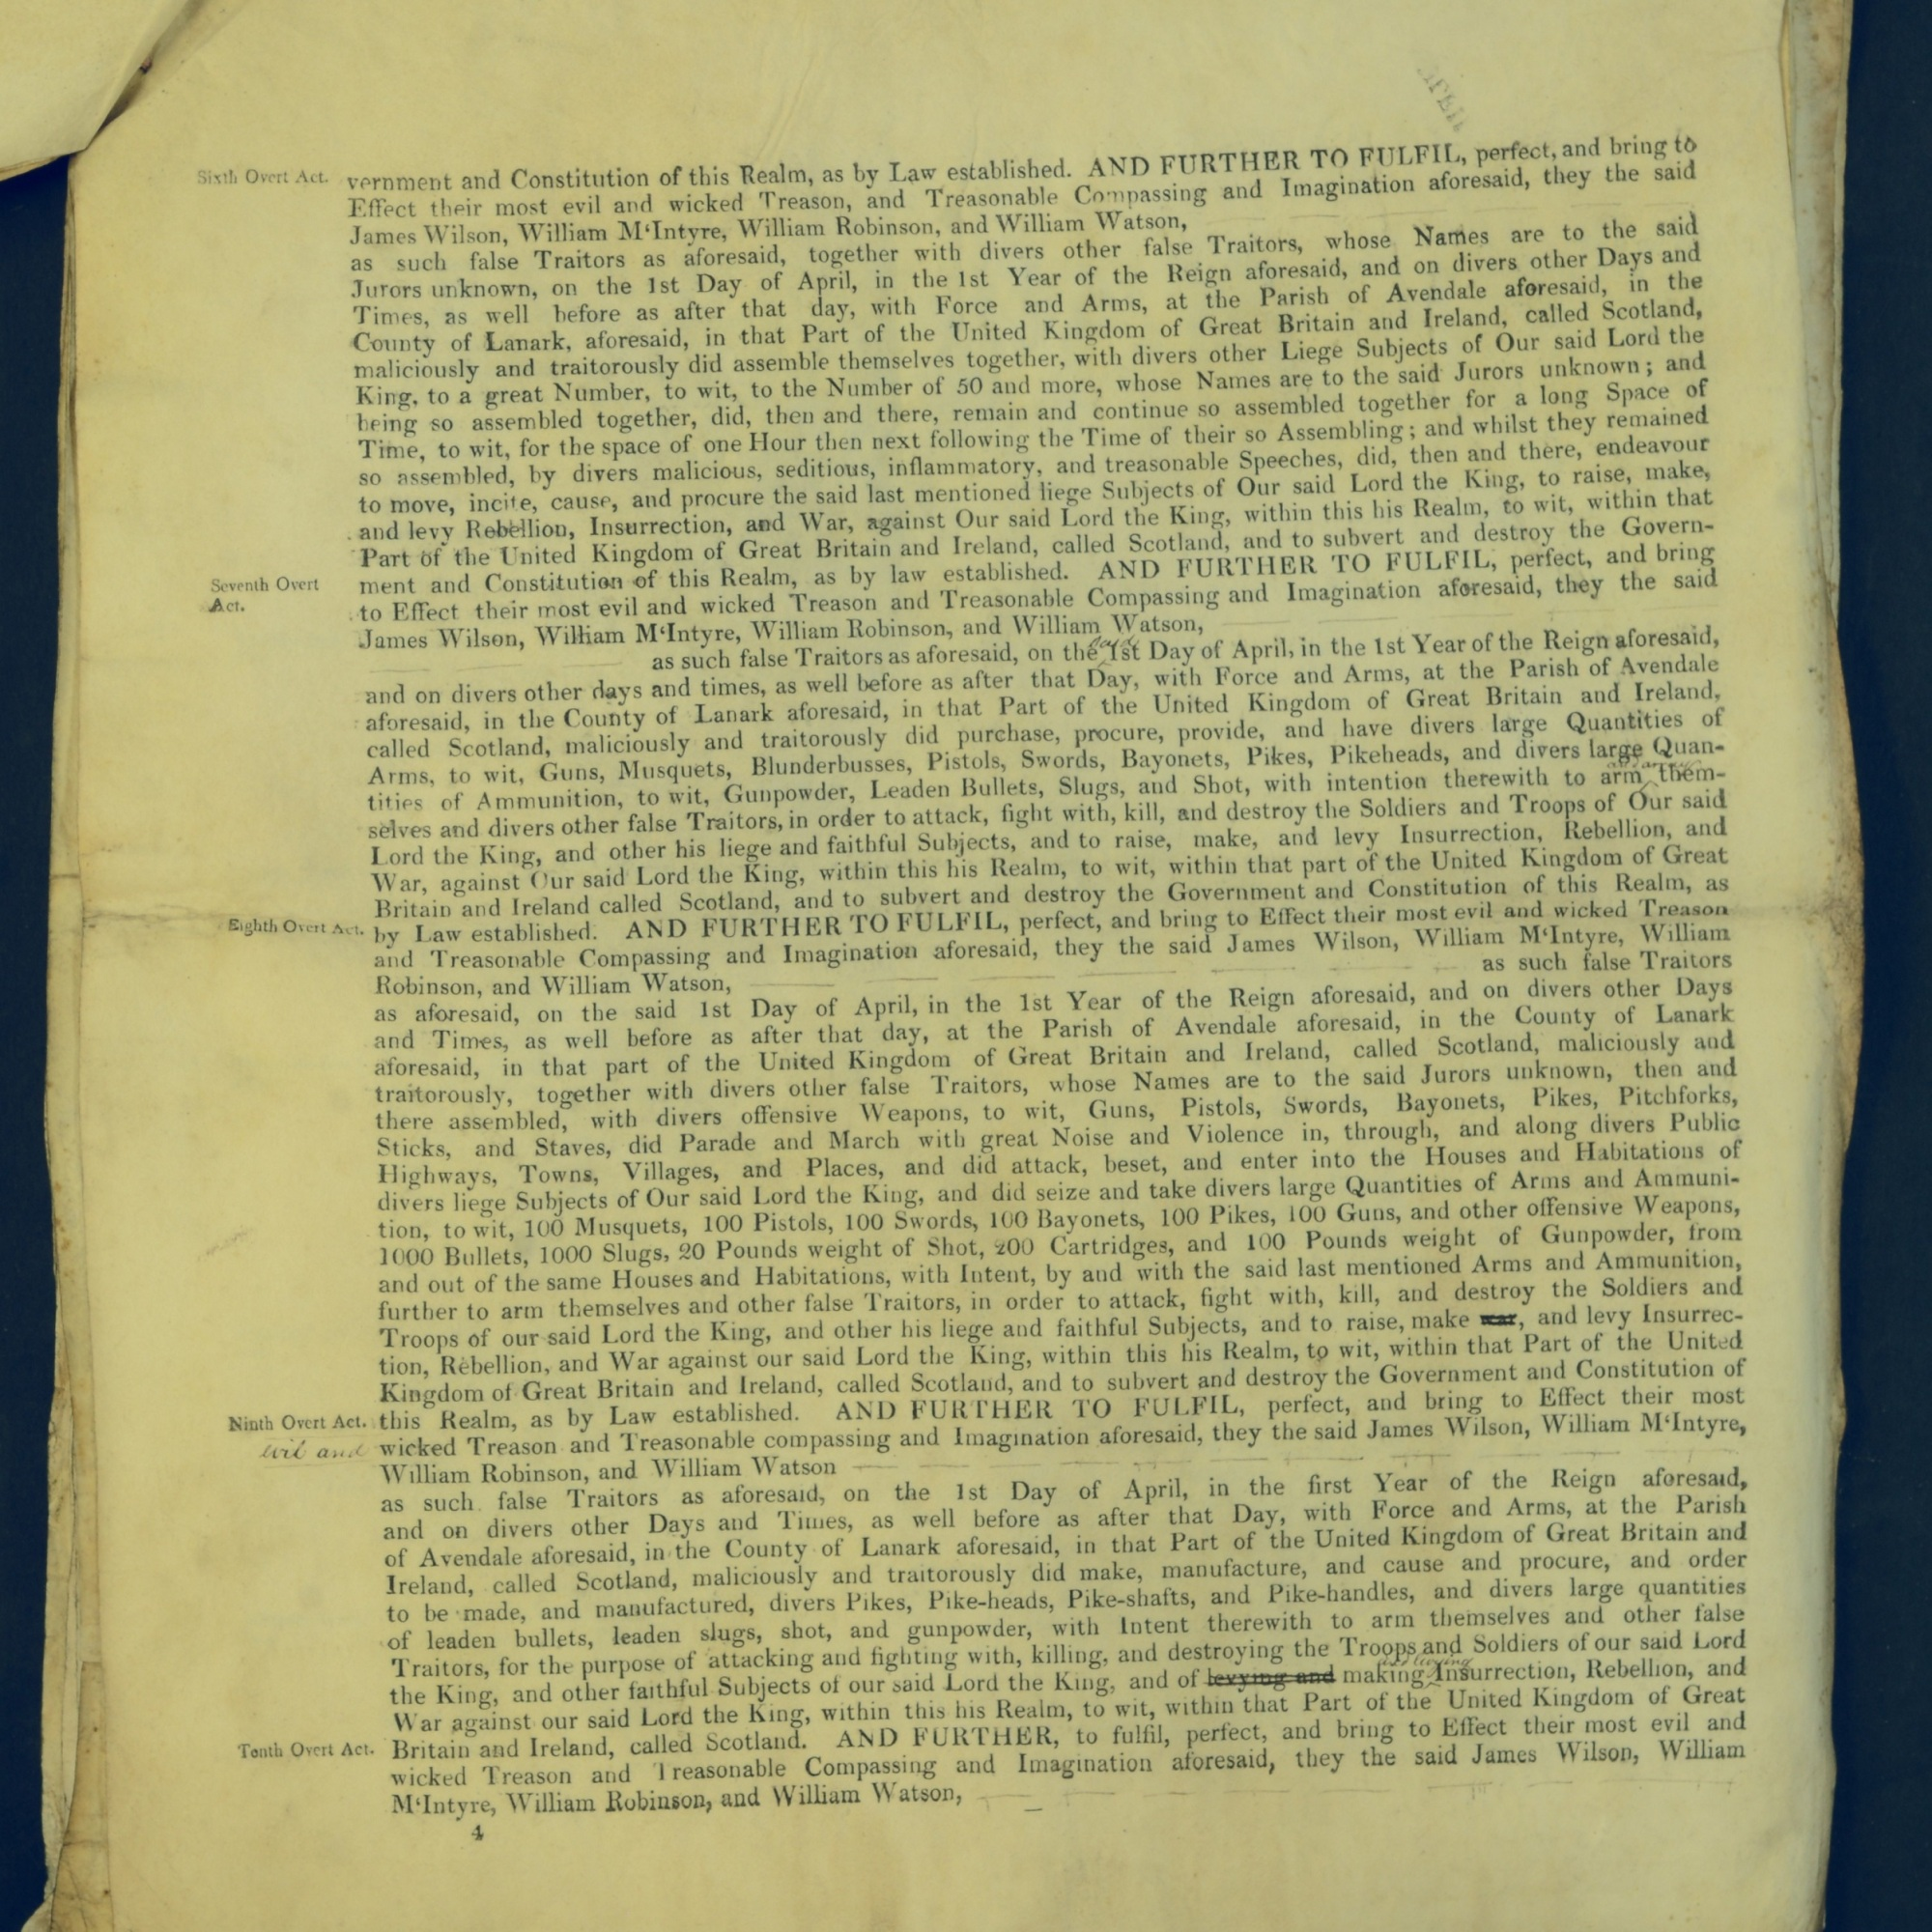 Treason Trials for the County of Lanark, the Strathaven Case. True bills found against four men, James Wilson, William McIntyre, William Robinson and William Watson. National Records of Scotland, Crown copyright, JC21/3/4 p4